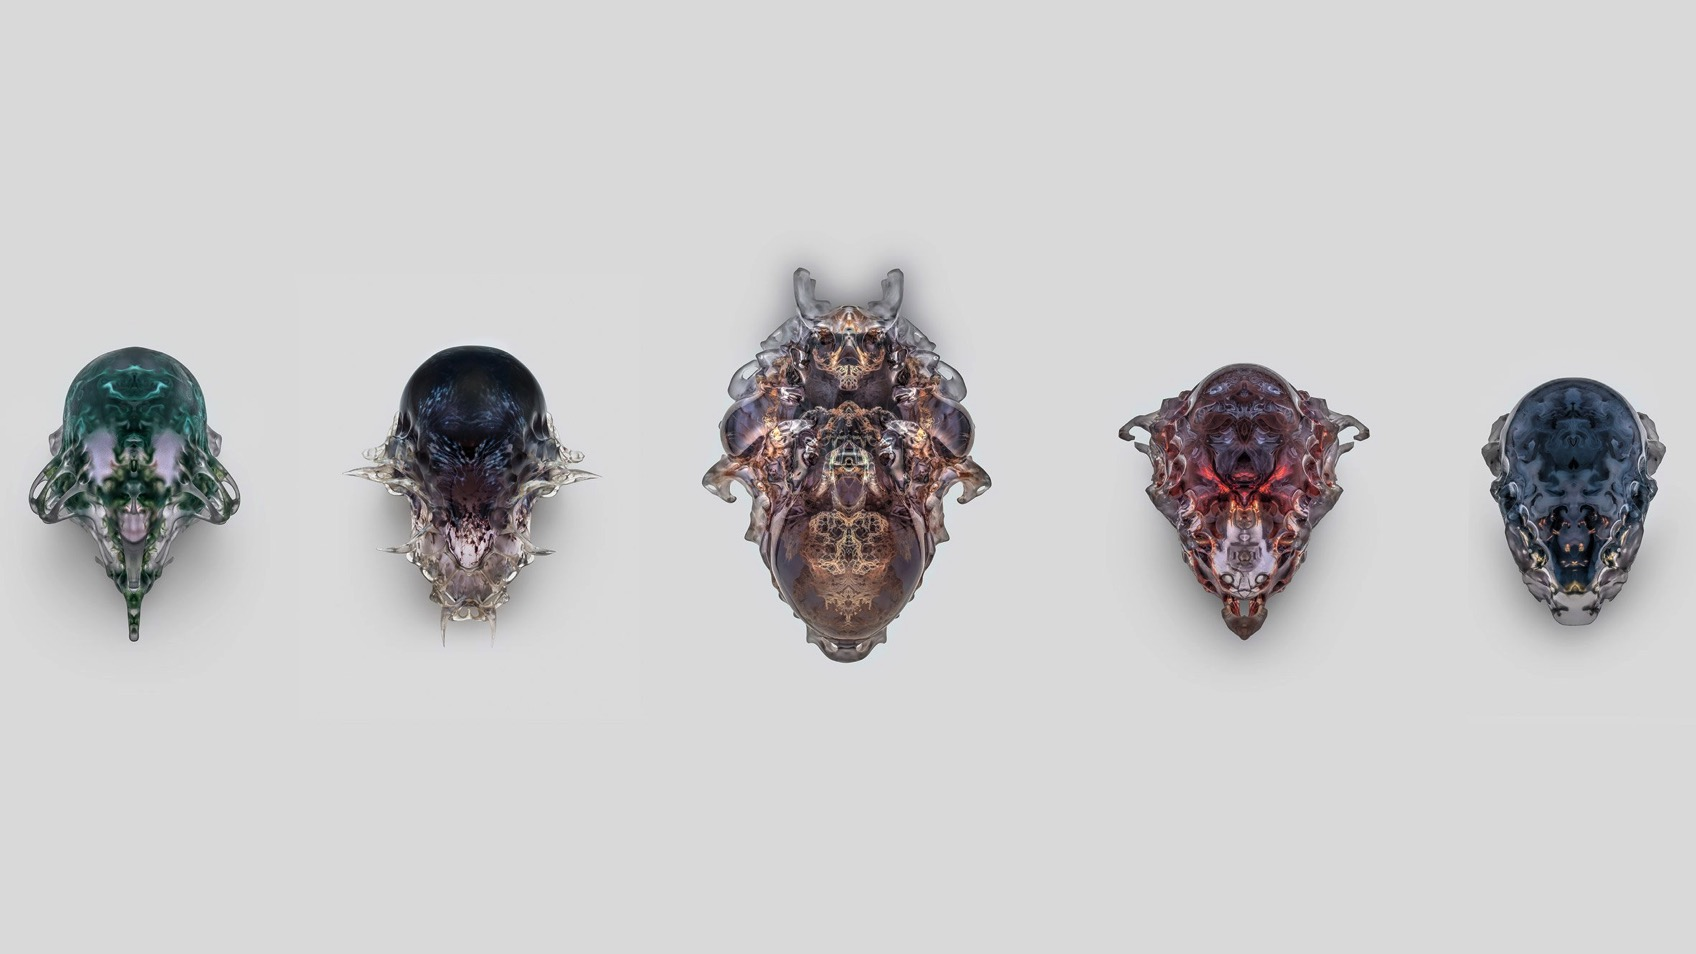 Vespers neri oxman 3d printed death masks mediated matter group dezeen hero